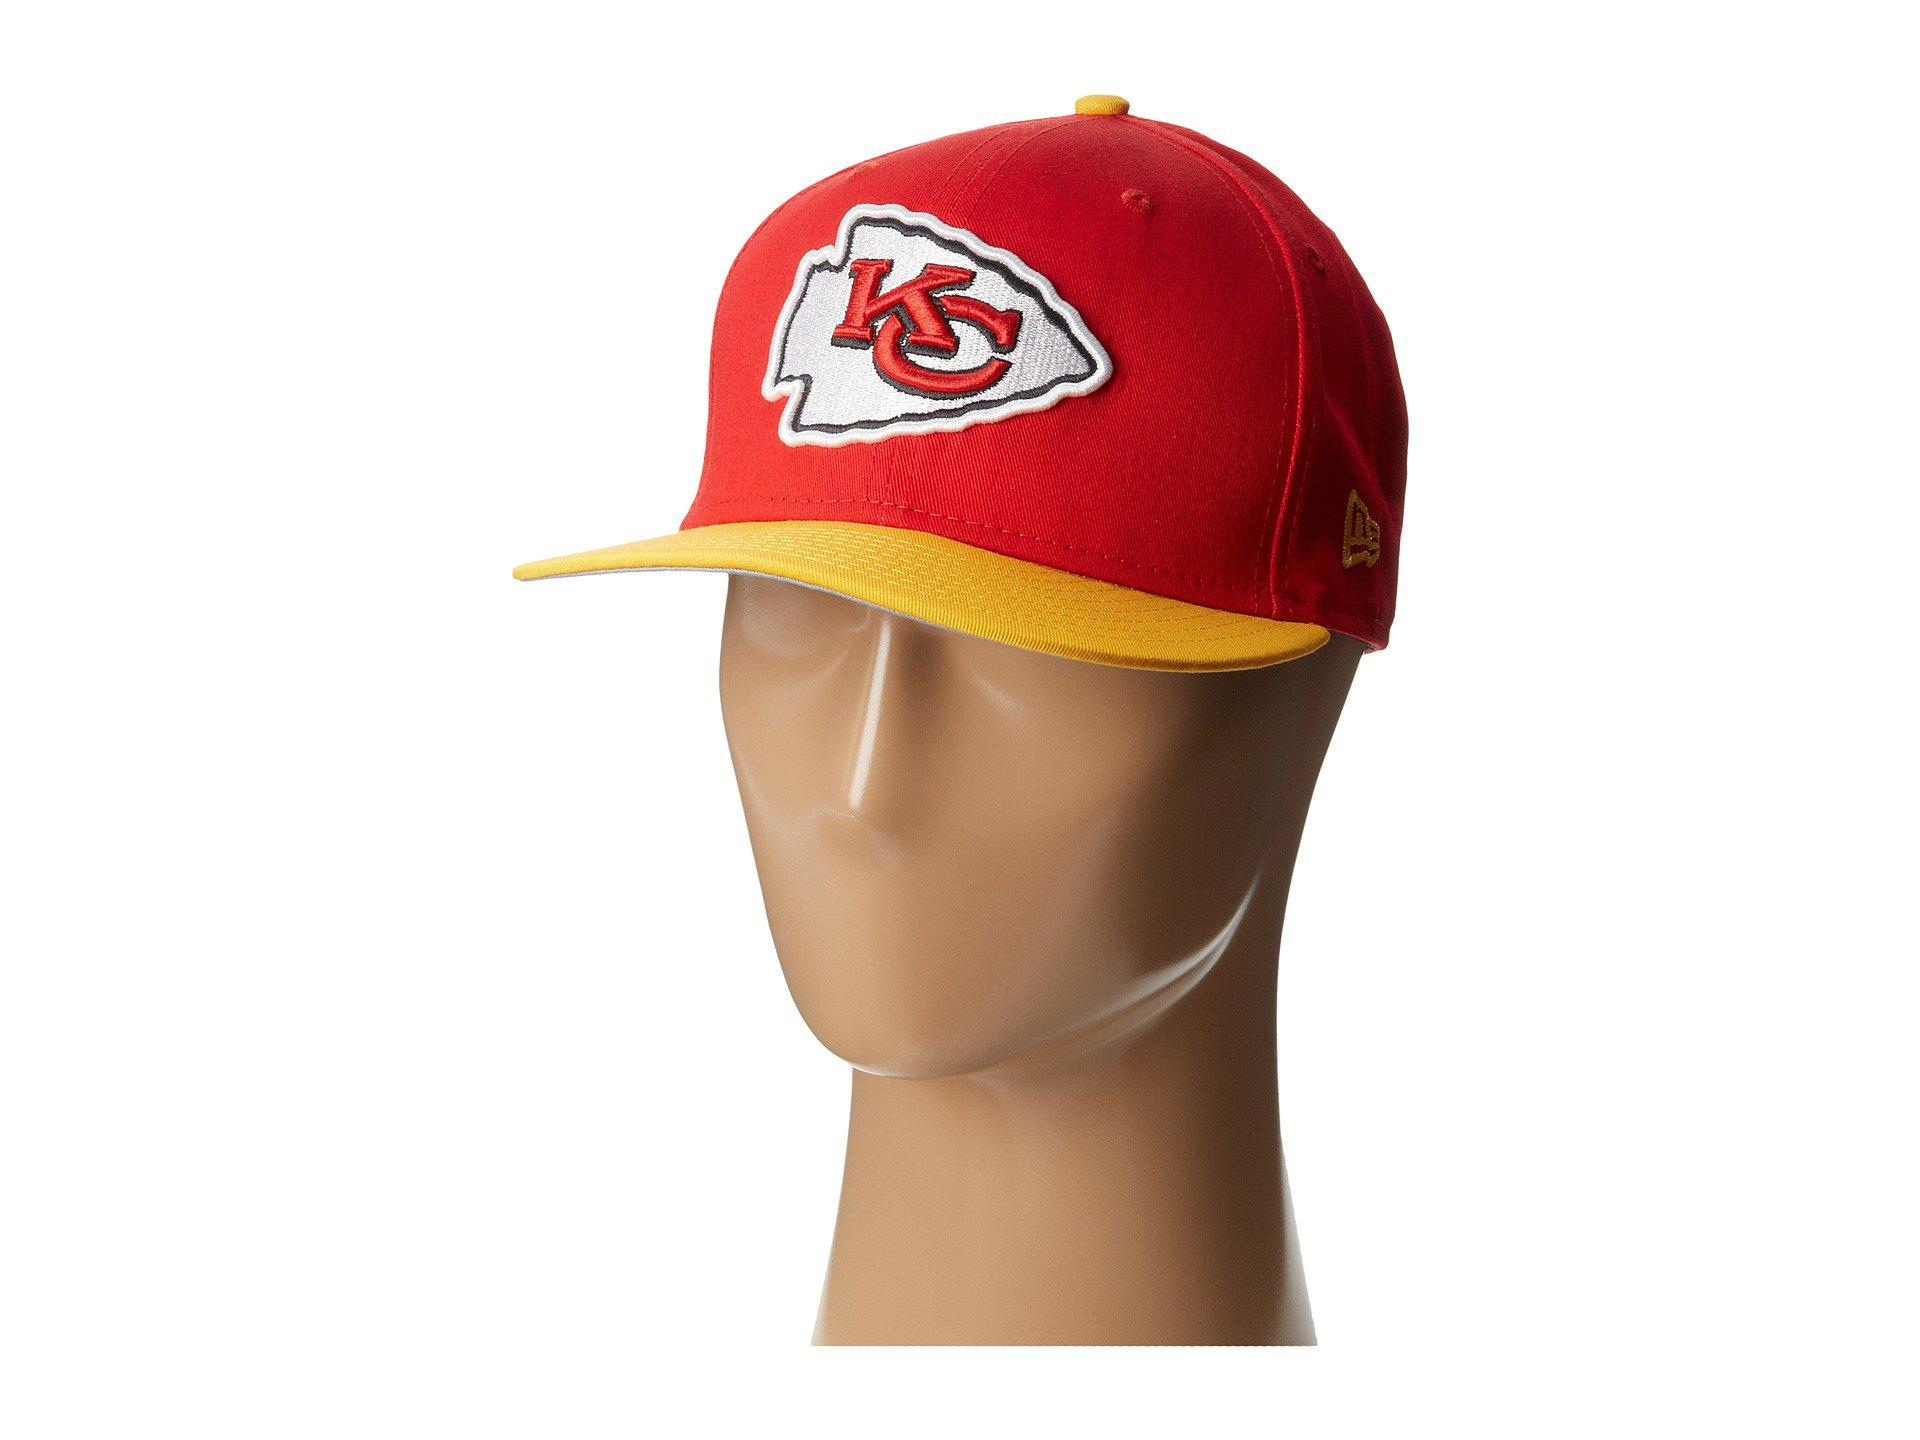 Lyst - Ktz Nfl Baycik Snap 59fifty - Kansas City Chiefs in Red for Men cc6b660ef